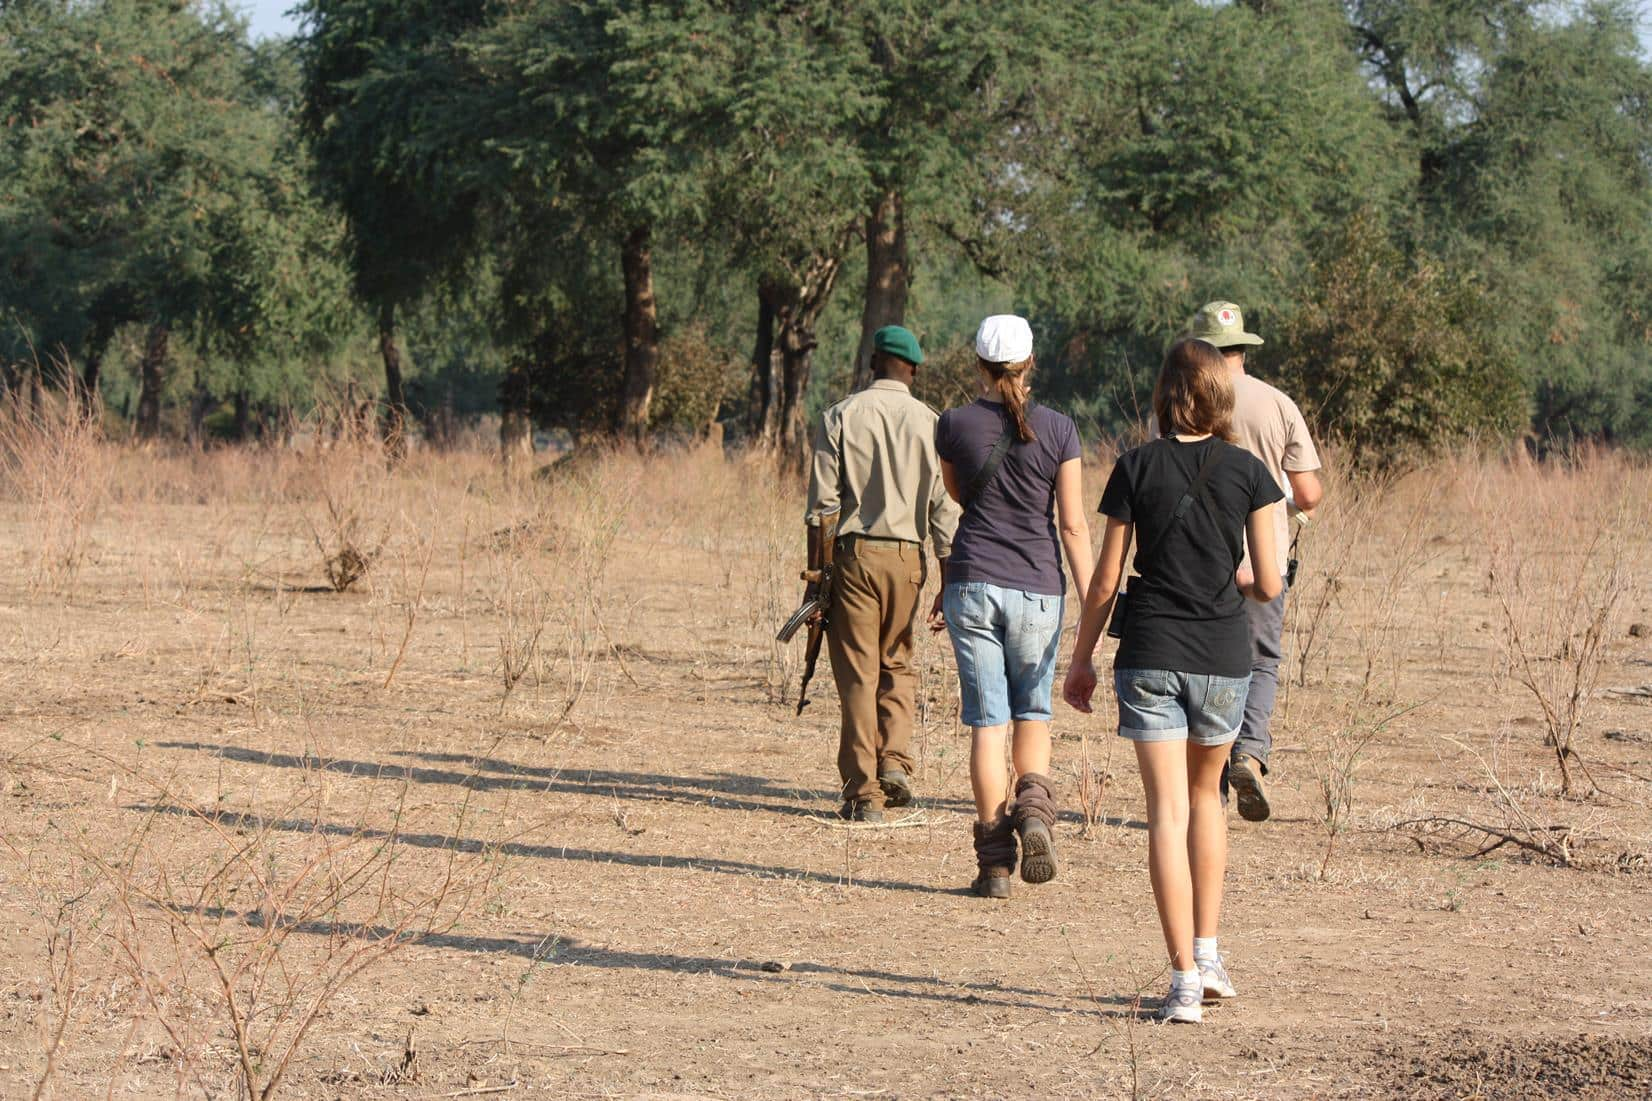 It is best to wear long-sleeved shirts, long pants, boots and a hat when you walk in the veld.